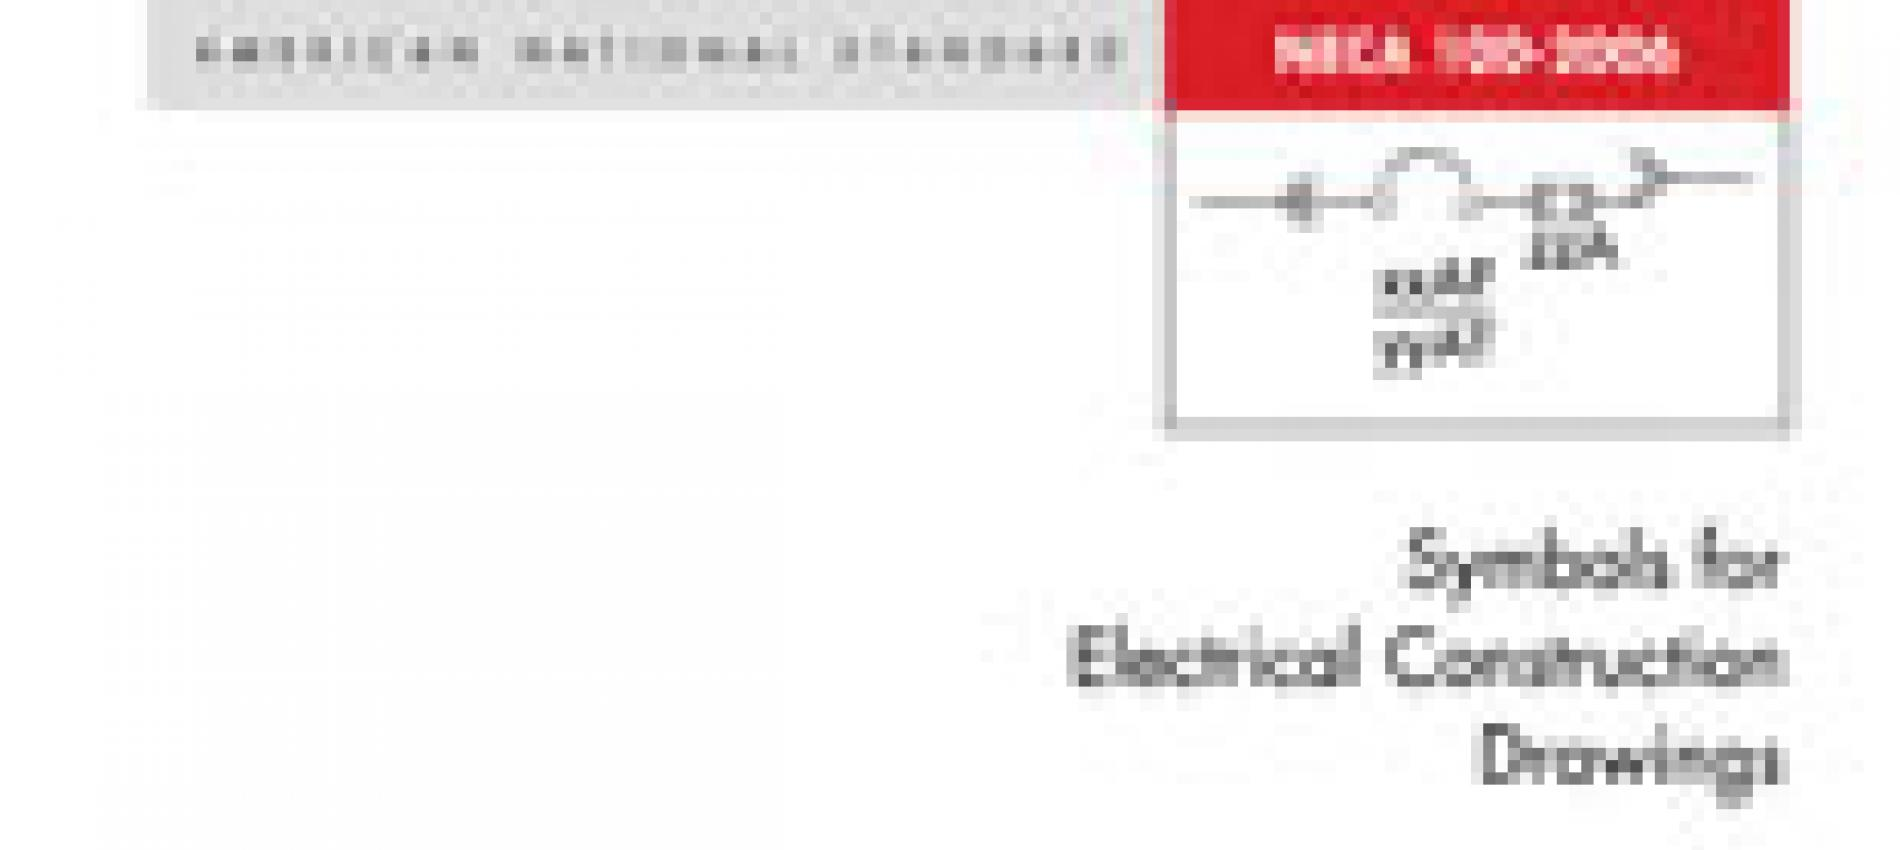 Grounding Electrode Conductor Sizes Disconnects And More House Wiring Entrance Neca Electrical Symbols Standard Now Cad Compatible